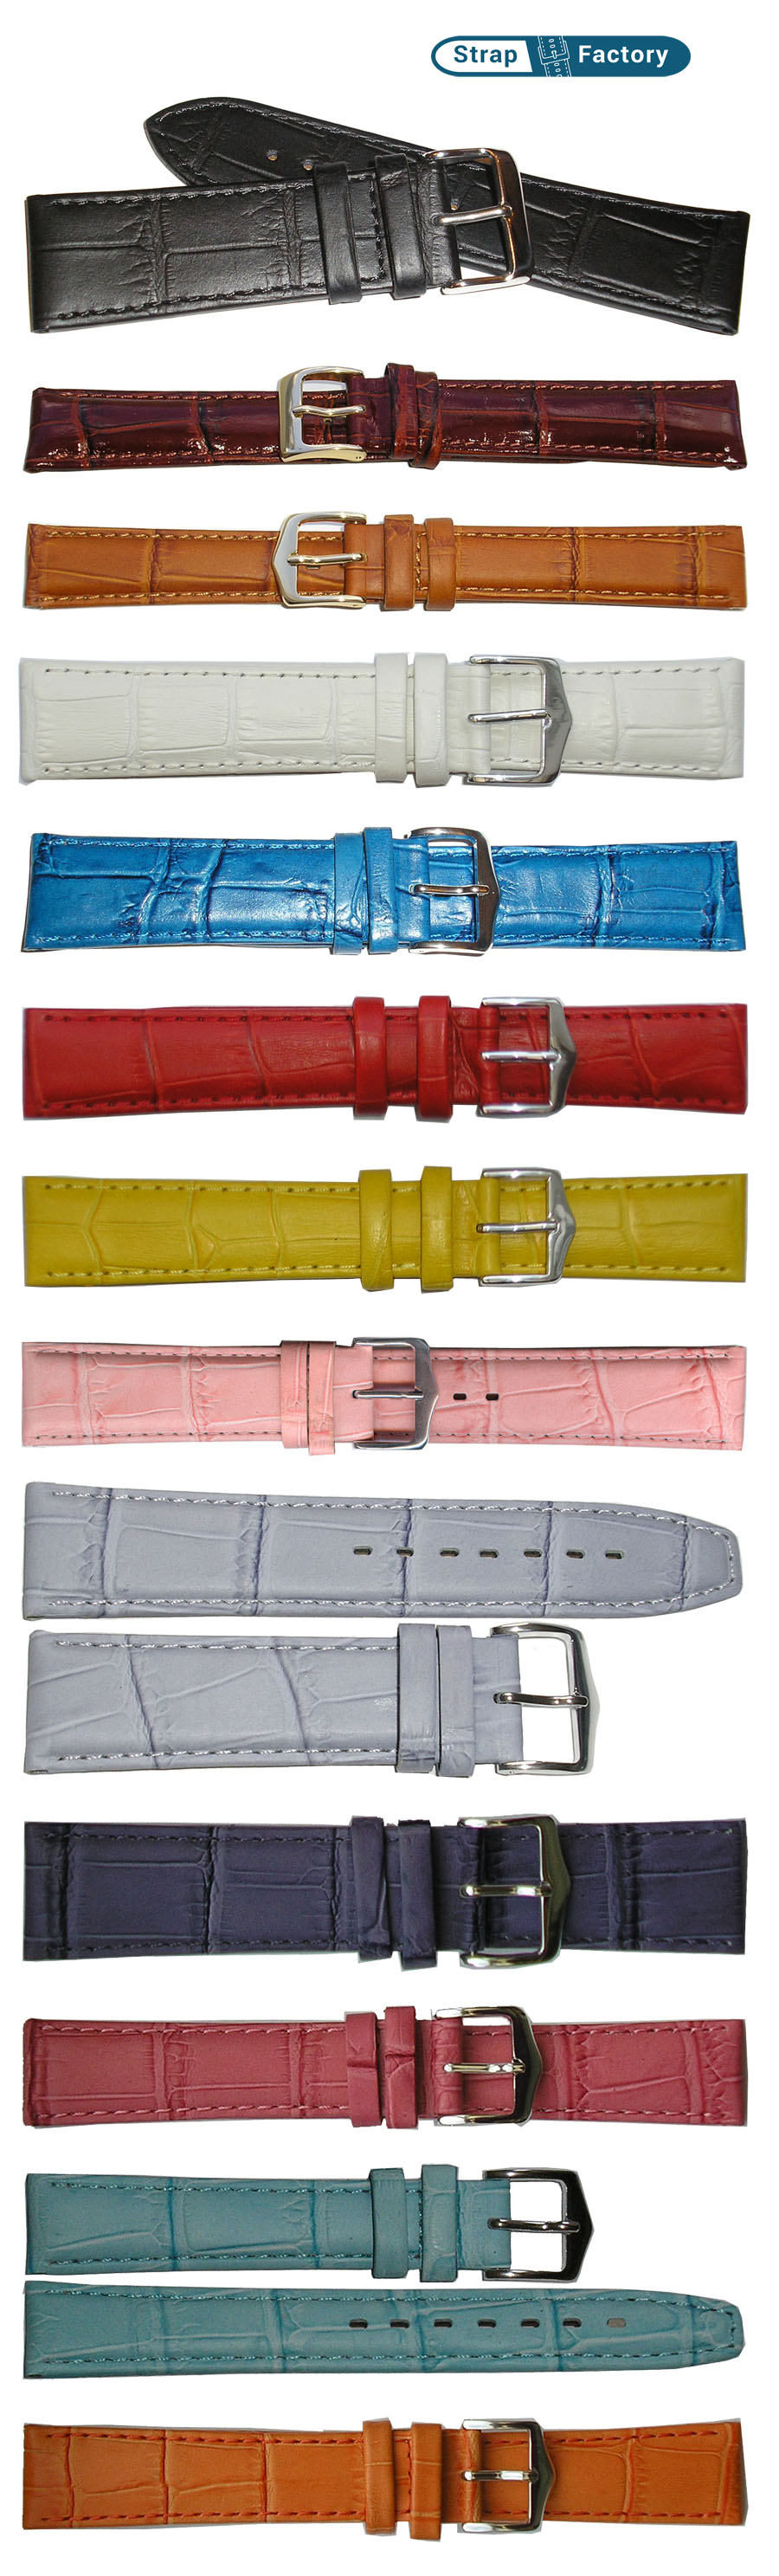 newsite crocodile grain leather watch strap